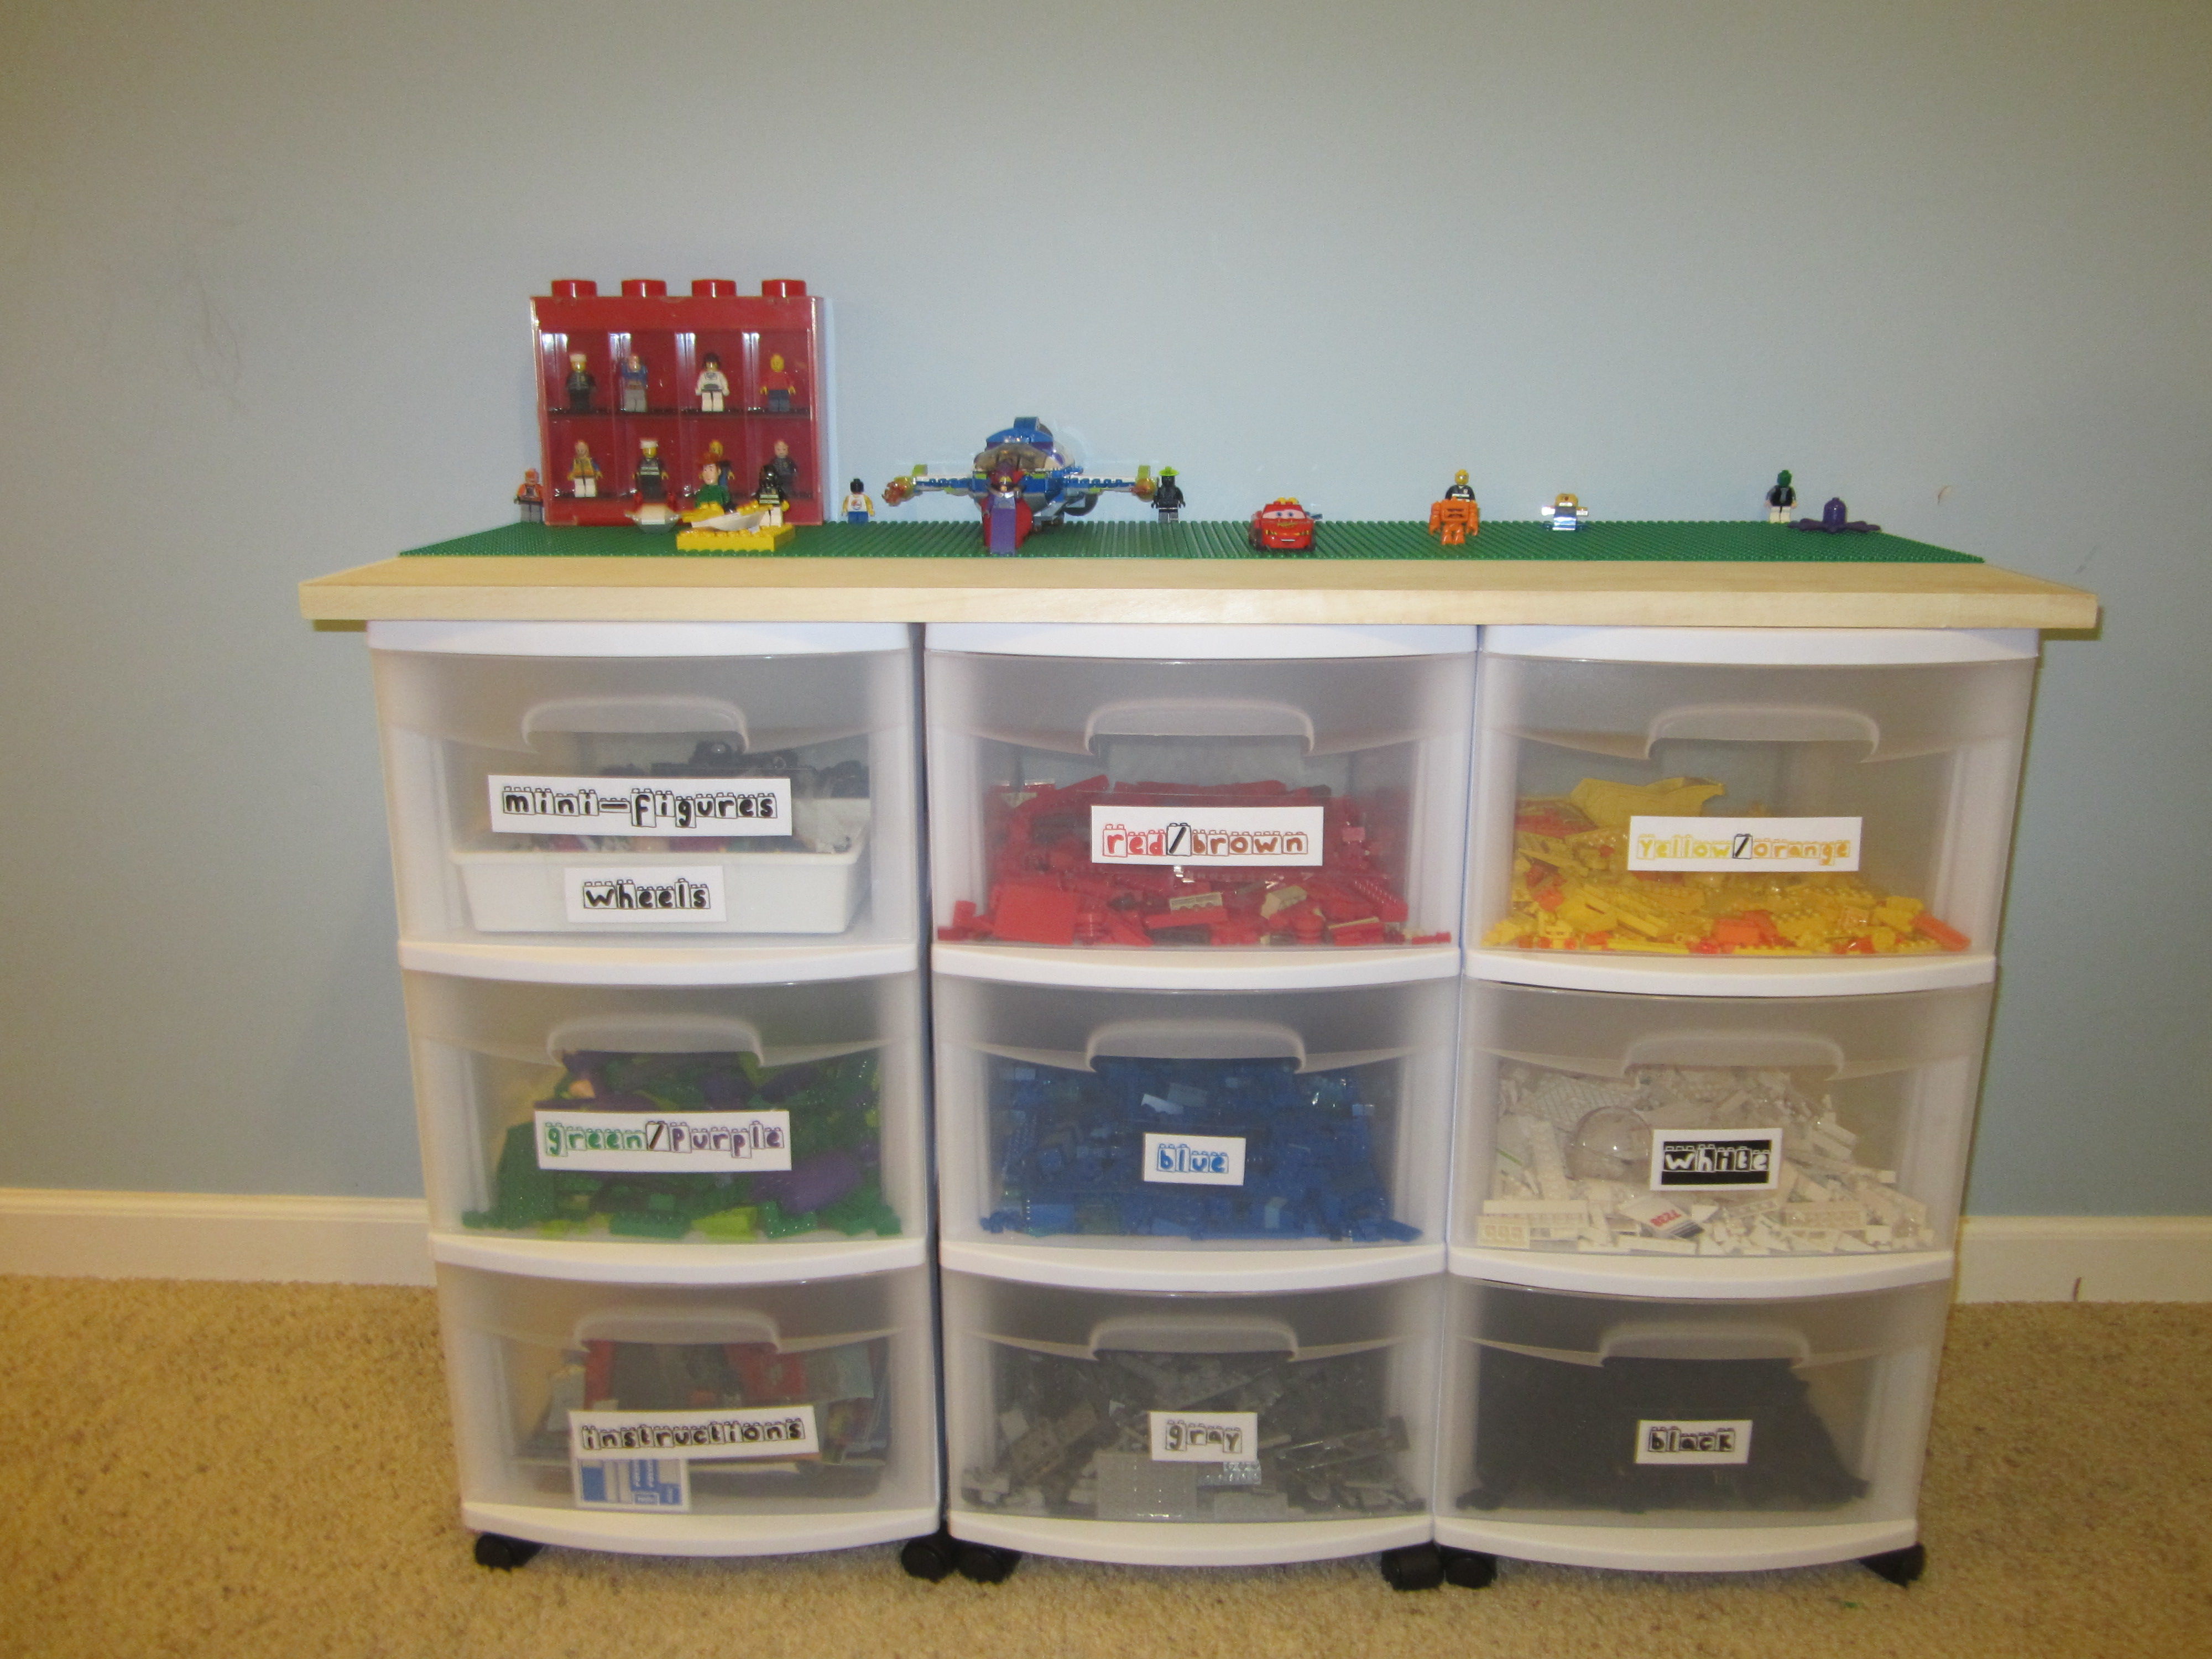 How To Make A Lego Table With Storage Containers Three